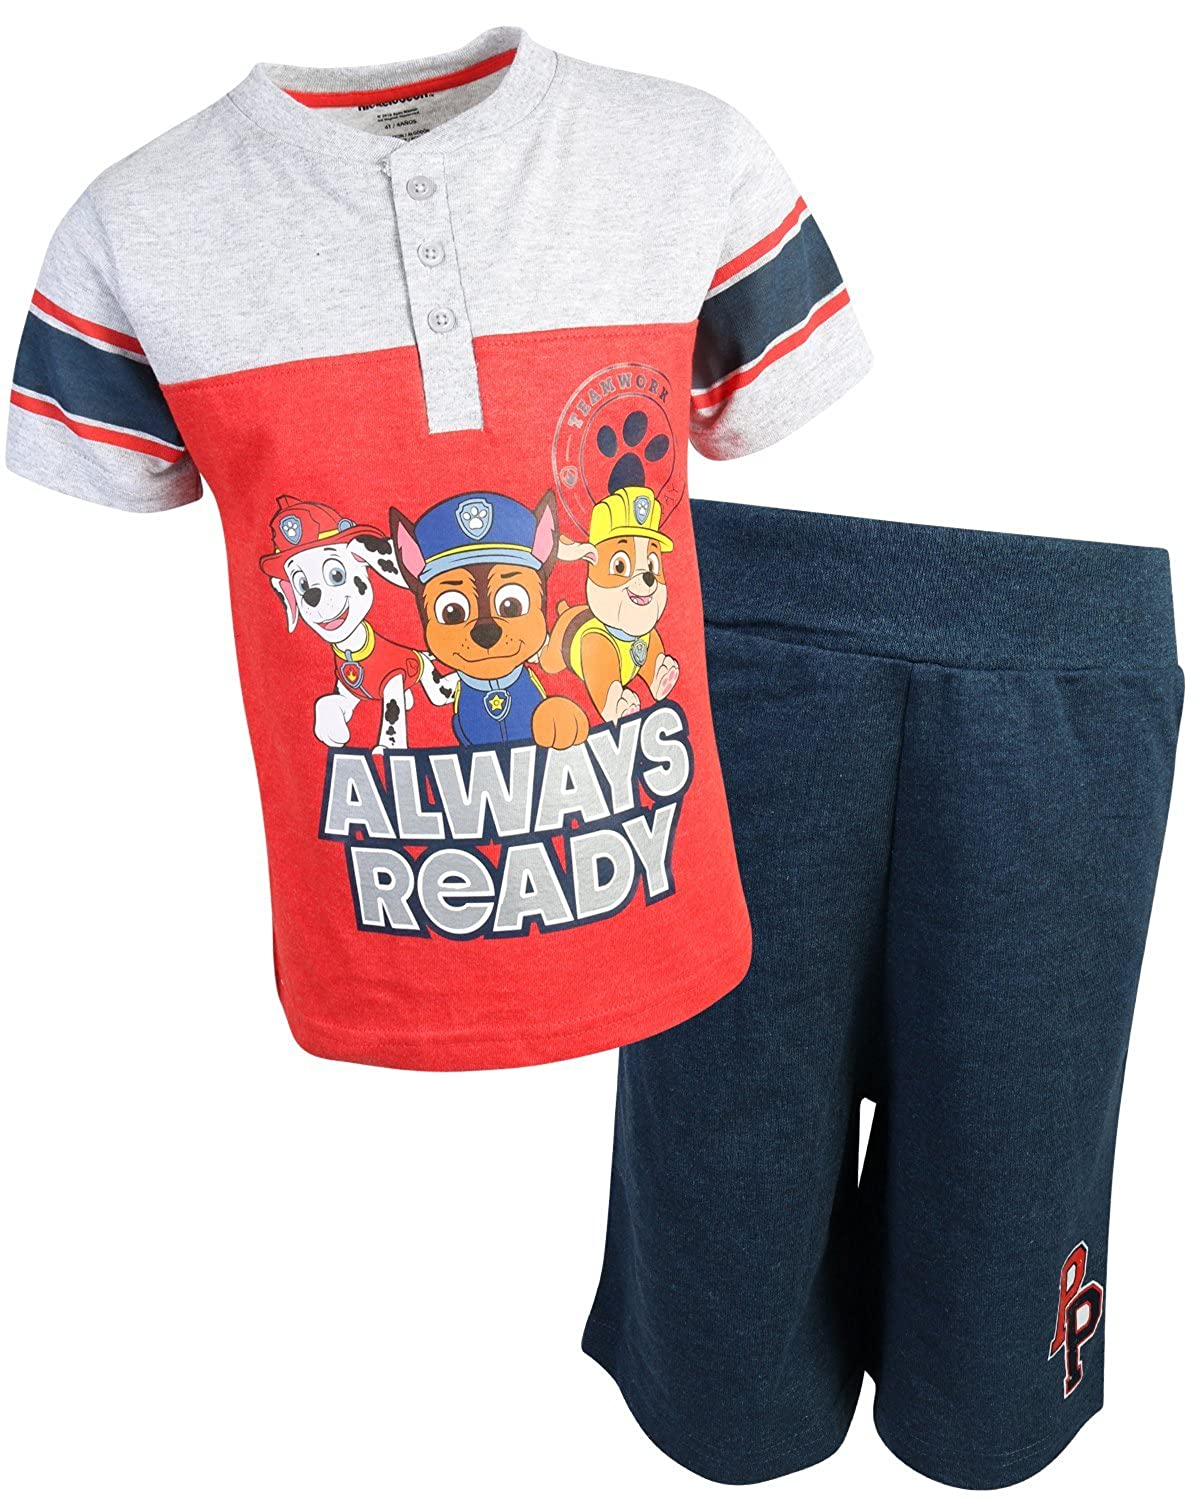 Nickelodeon Paw Patrol Boys 2-Piece French Terry Short Set